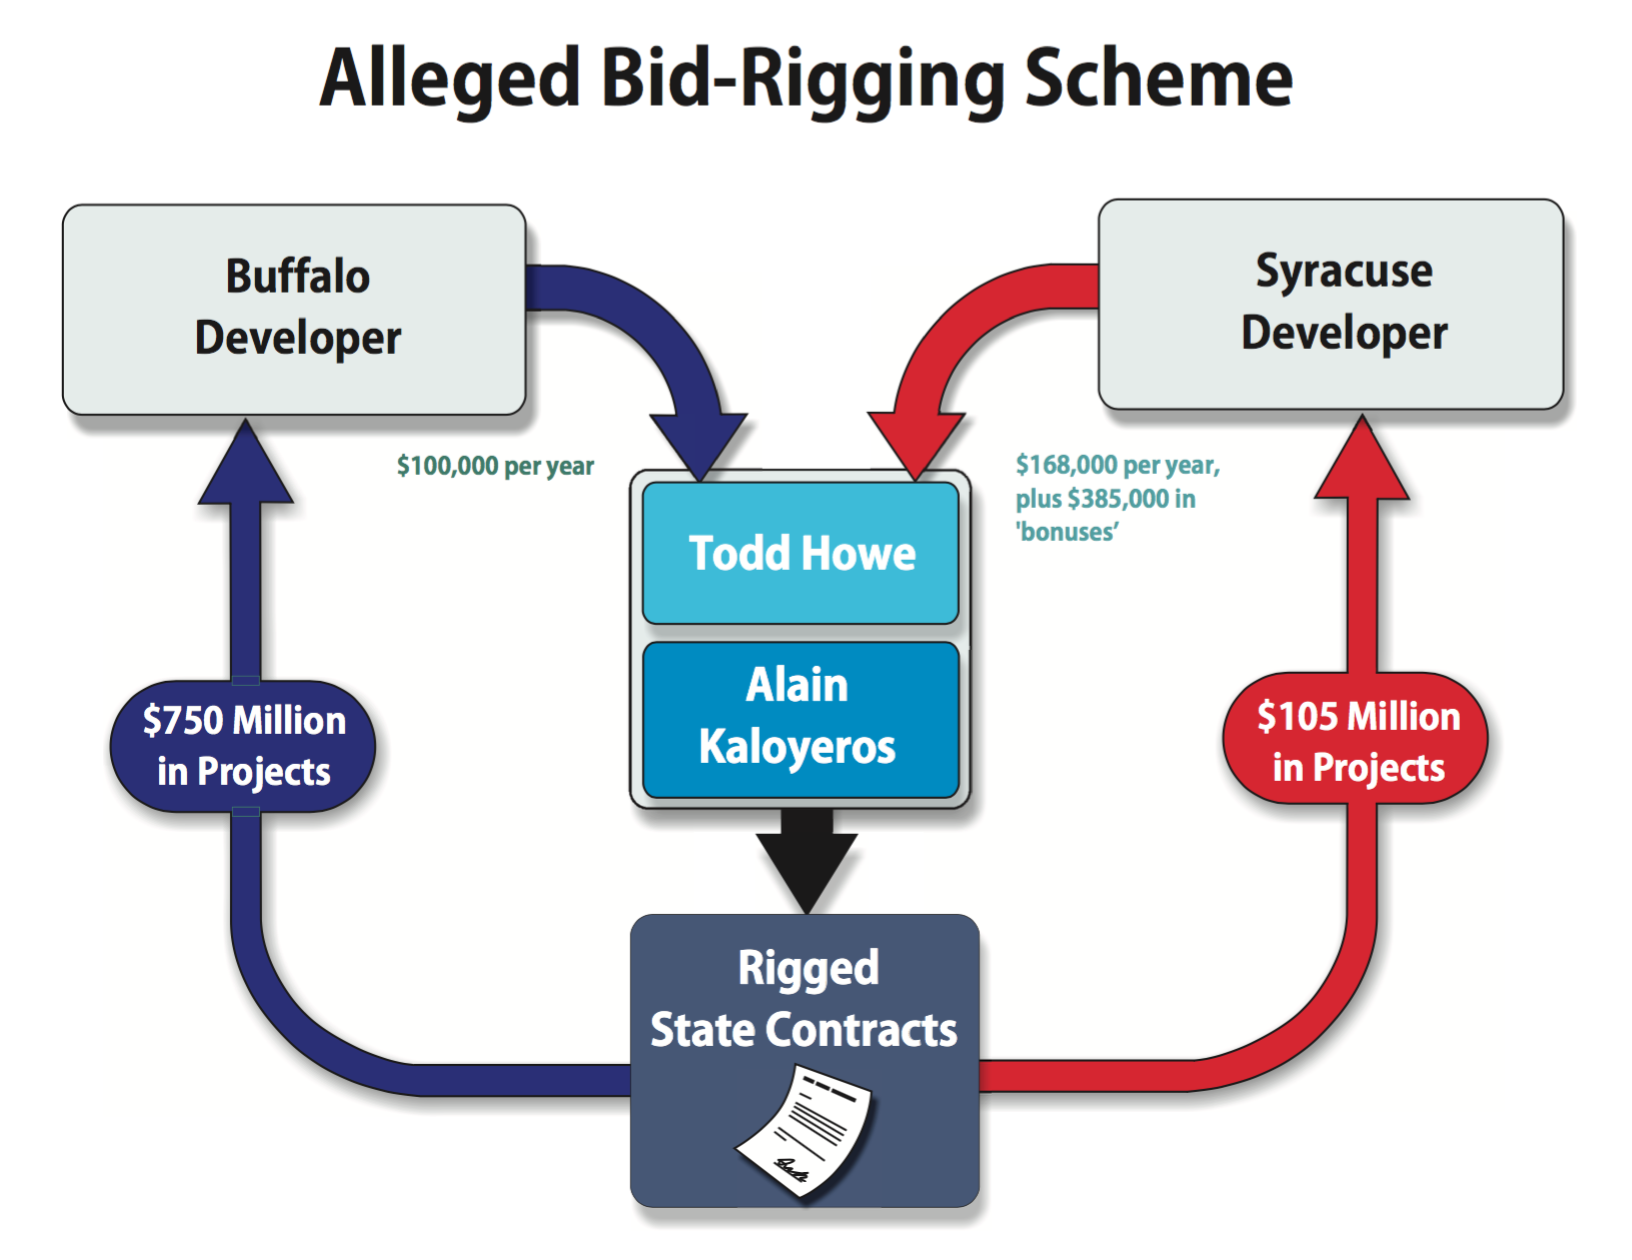 """Todd Howe , a lobbyist, was paid to consult for  SUNY Polytechnic Institute  as its affiliate,  Fort Schuyler Management Corporation , was reviewing bids for the  Buffalo Billion  contracts. During Thursday's press conference, U.S. Attorney Preet Bharara said that Mr. Howe also acted as a paid consultant to companies seeking the Buffalo Billion contracts, rendering the process suspect. """"This was, of course, an inherently corrupt arrangement,"""" U.S. Attorney Bharara said, adding that, according to allegations in the Federal criminal complaint, SUNY Polytechnic Institute President  Alain Kaloyeros  and Mr. Howe """"ran a rigged process"""" for the bids for the Buffalo Billion contracts. Source : U.S. Attorney's Office for the Southern District of New York/Public Domain"""